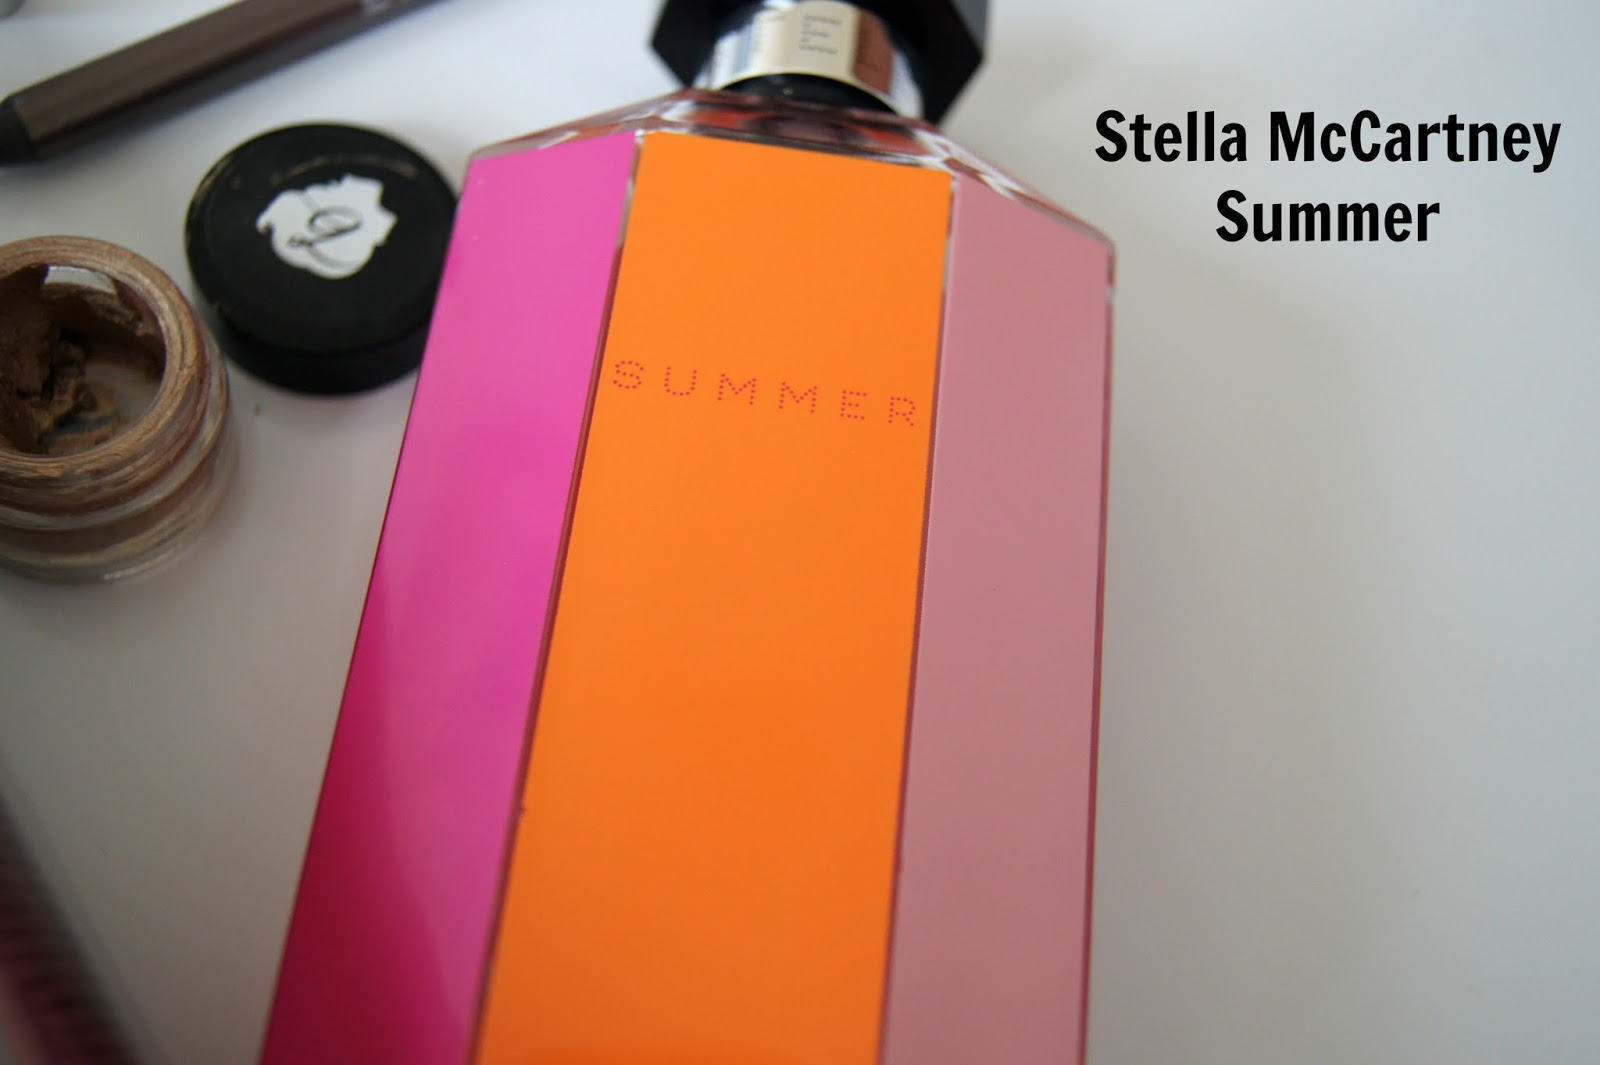 Stella McCartney Summer review